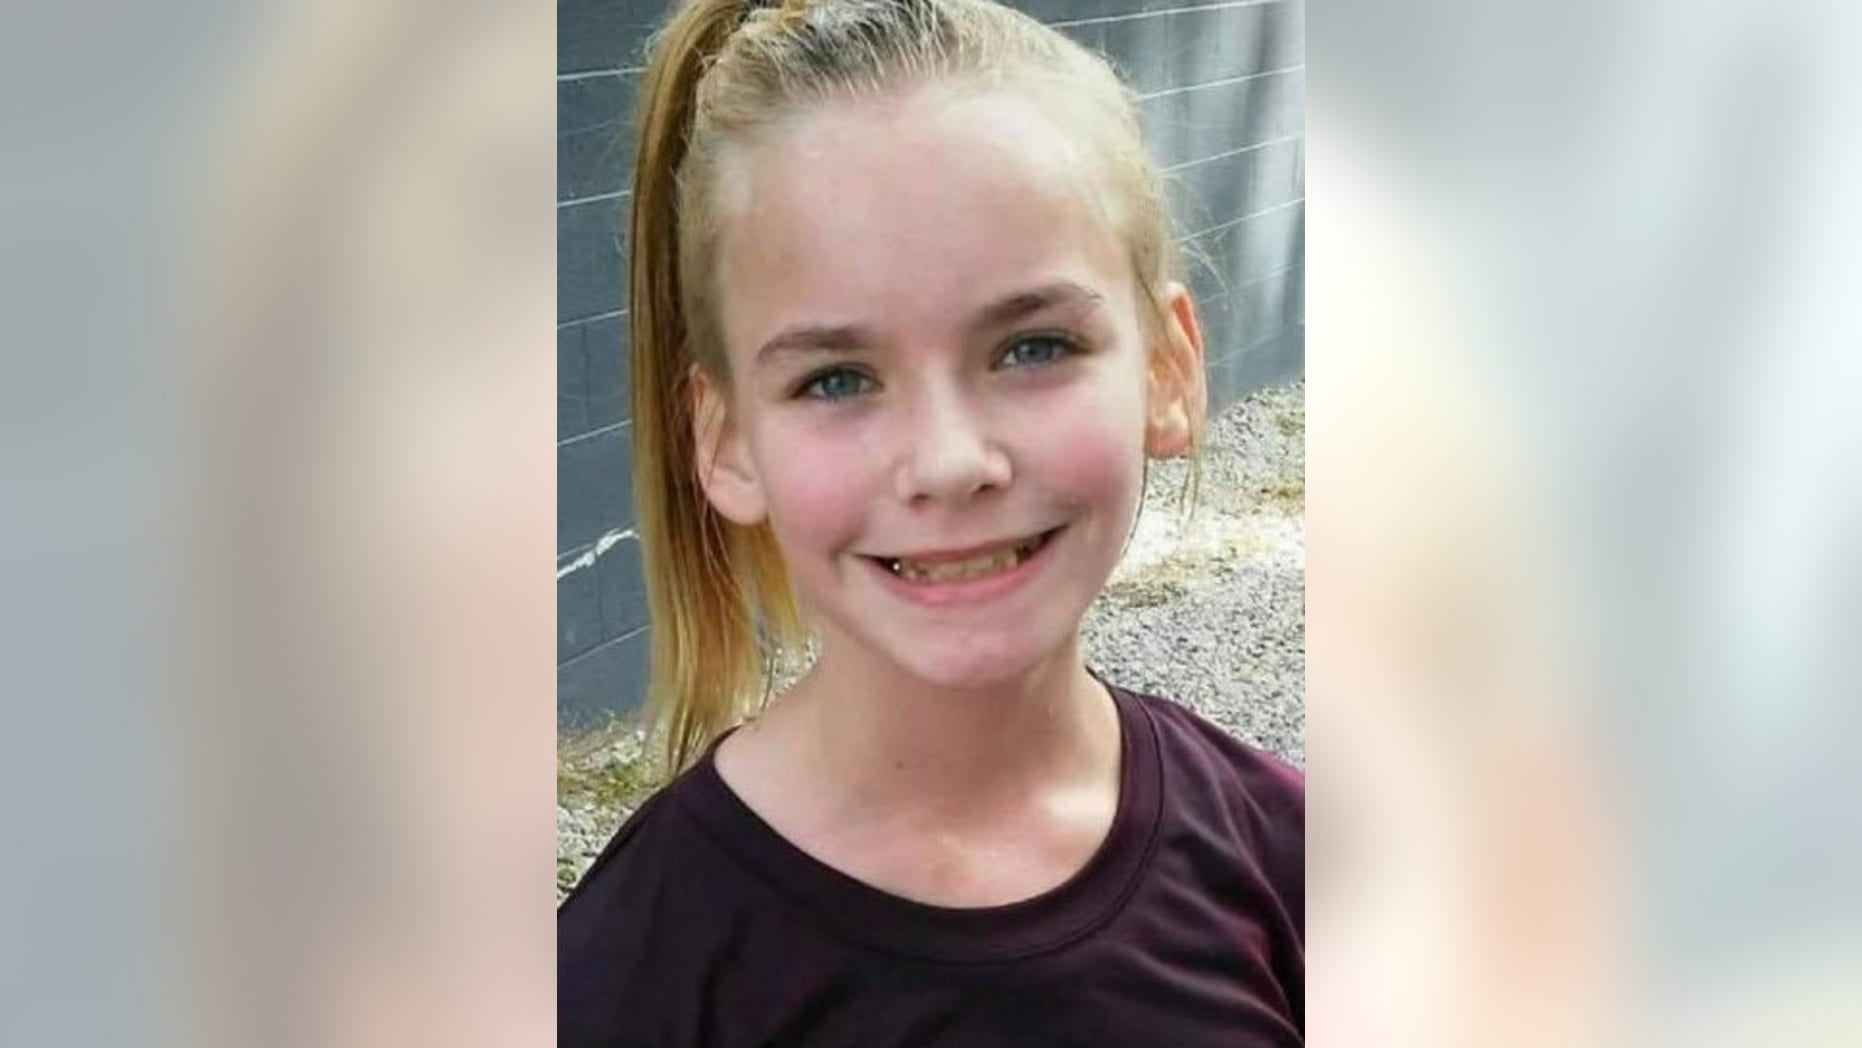 Amberly Barnett was found dead early Saturday following an overnight search for the missing 11-year-old in Mt. Vernon, Ala.